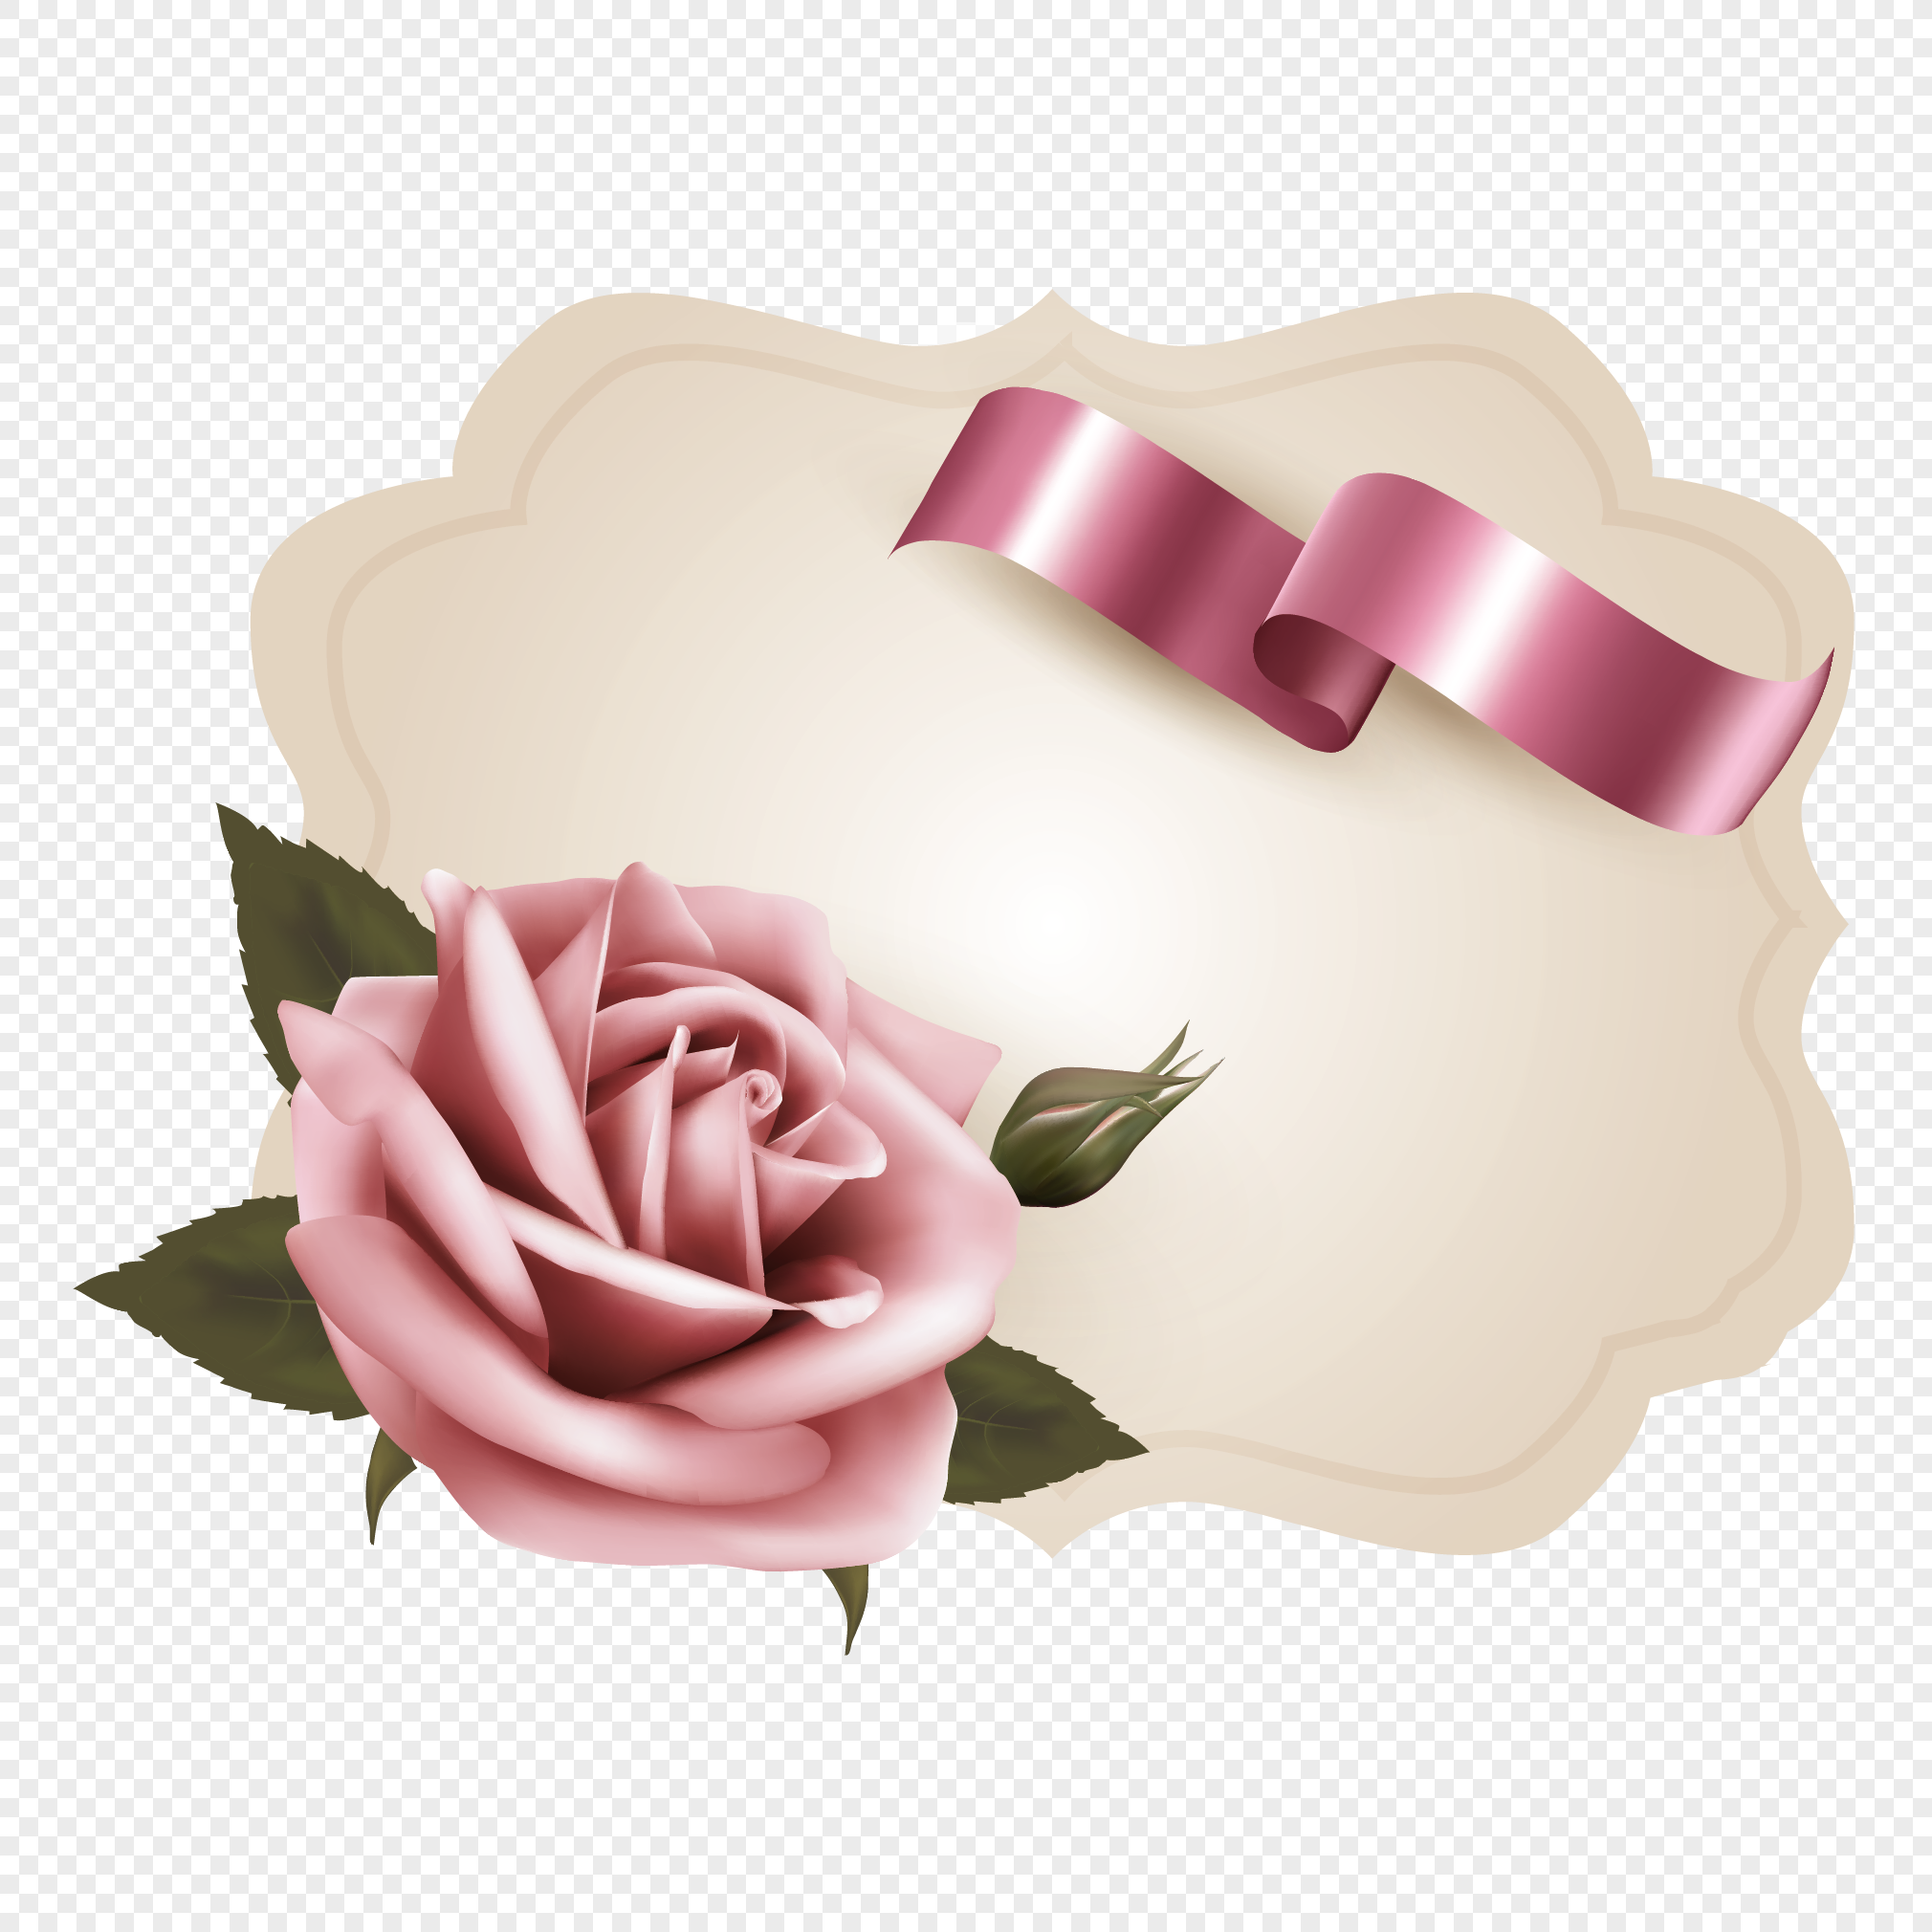 Romantic Valentines Day Card Png Image Picture Free Download